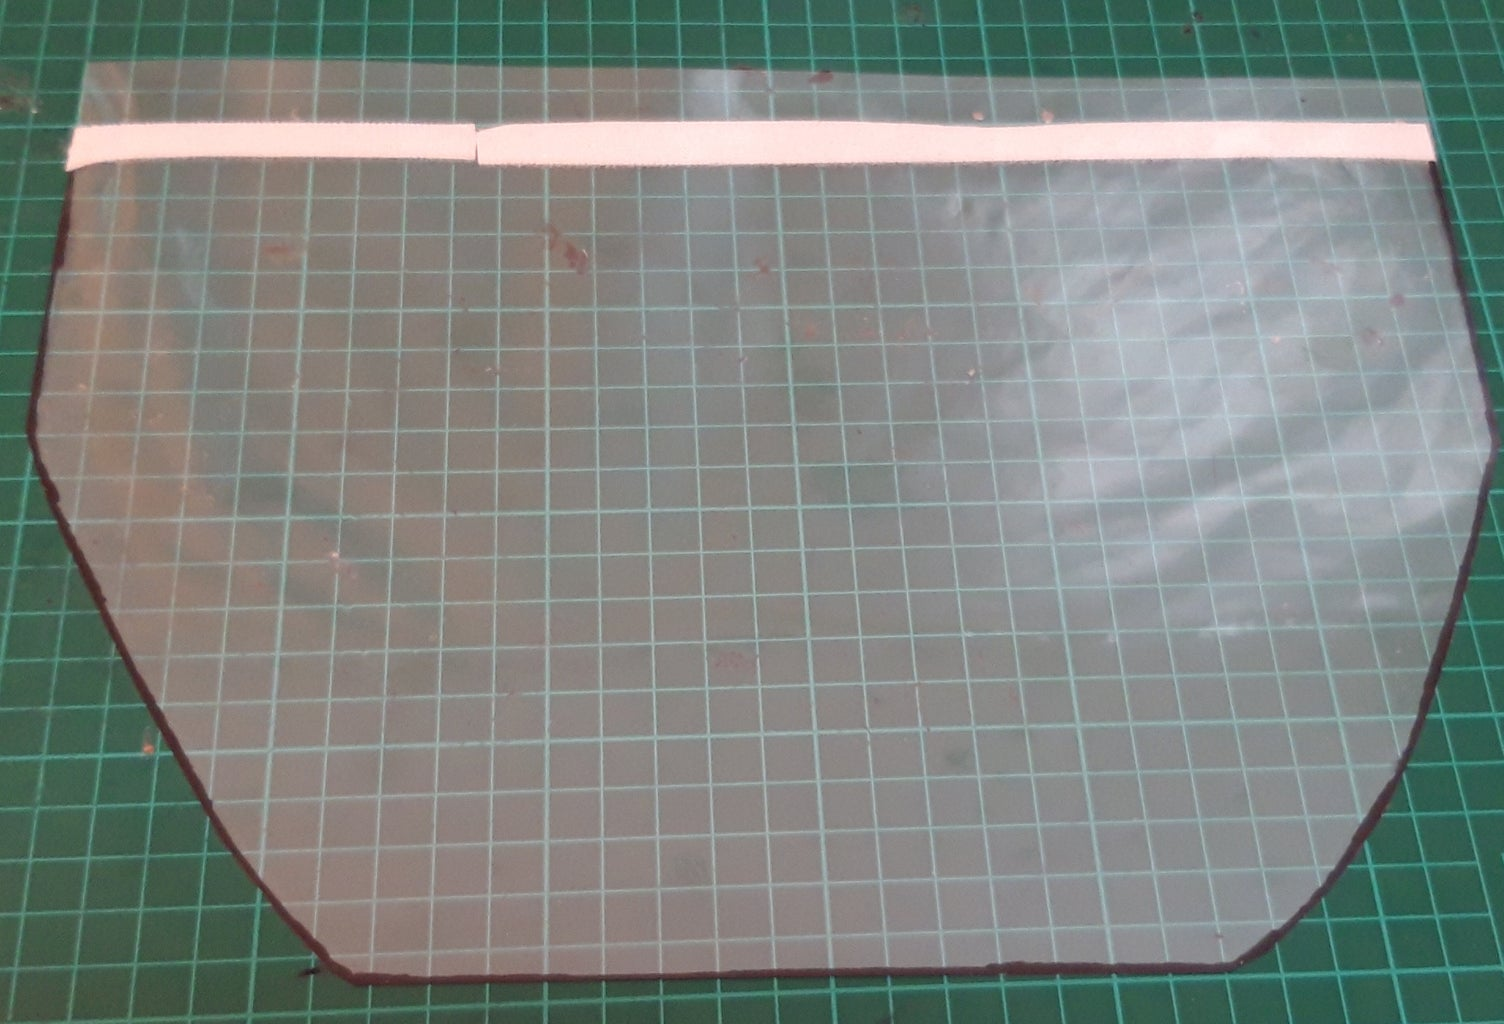 DESIGN #1: Cut and Paint the Acetate Sheet